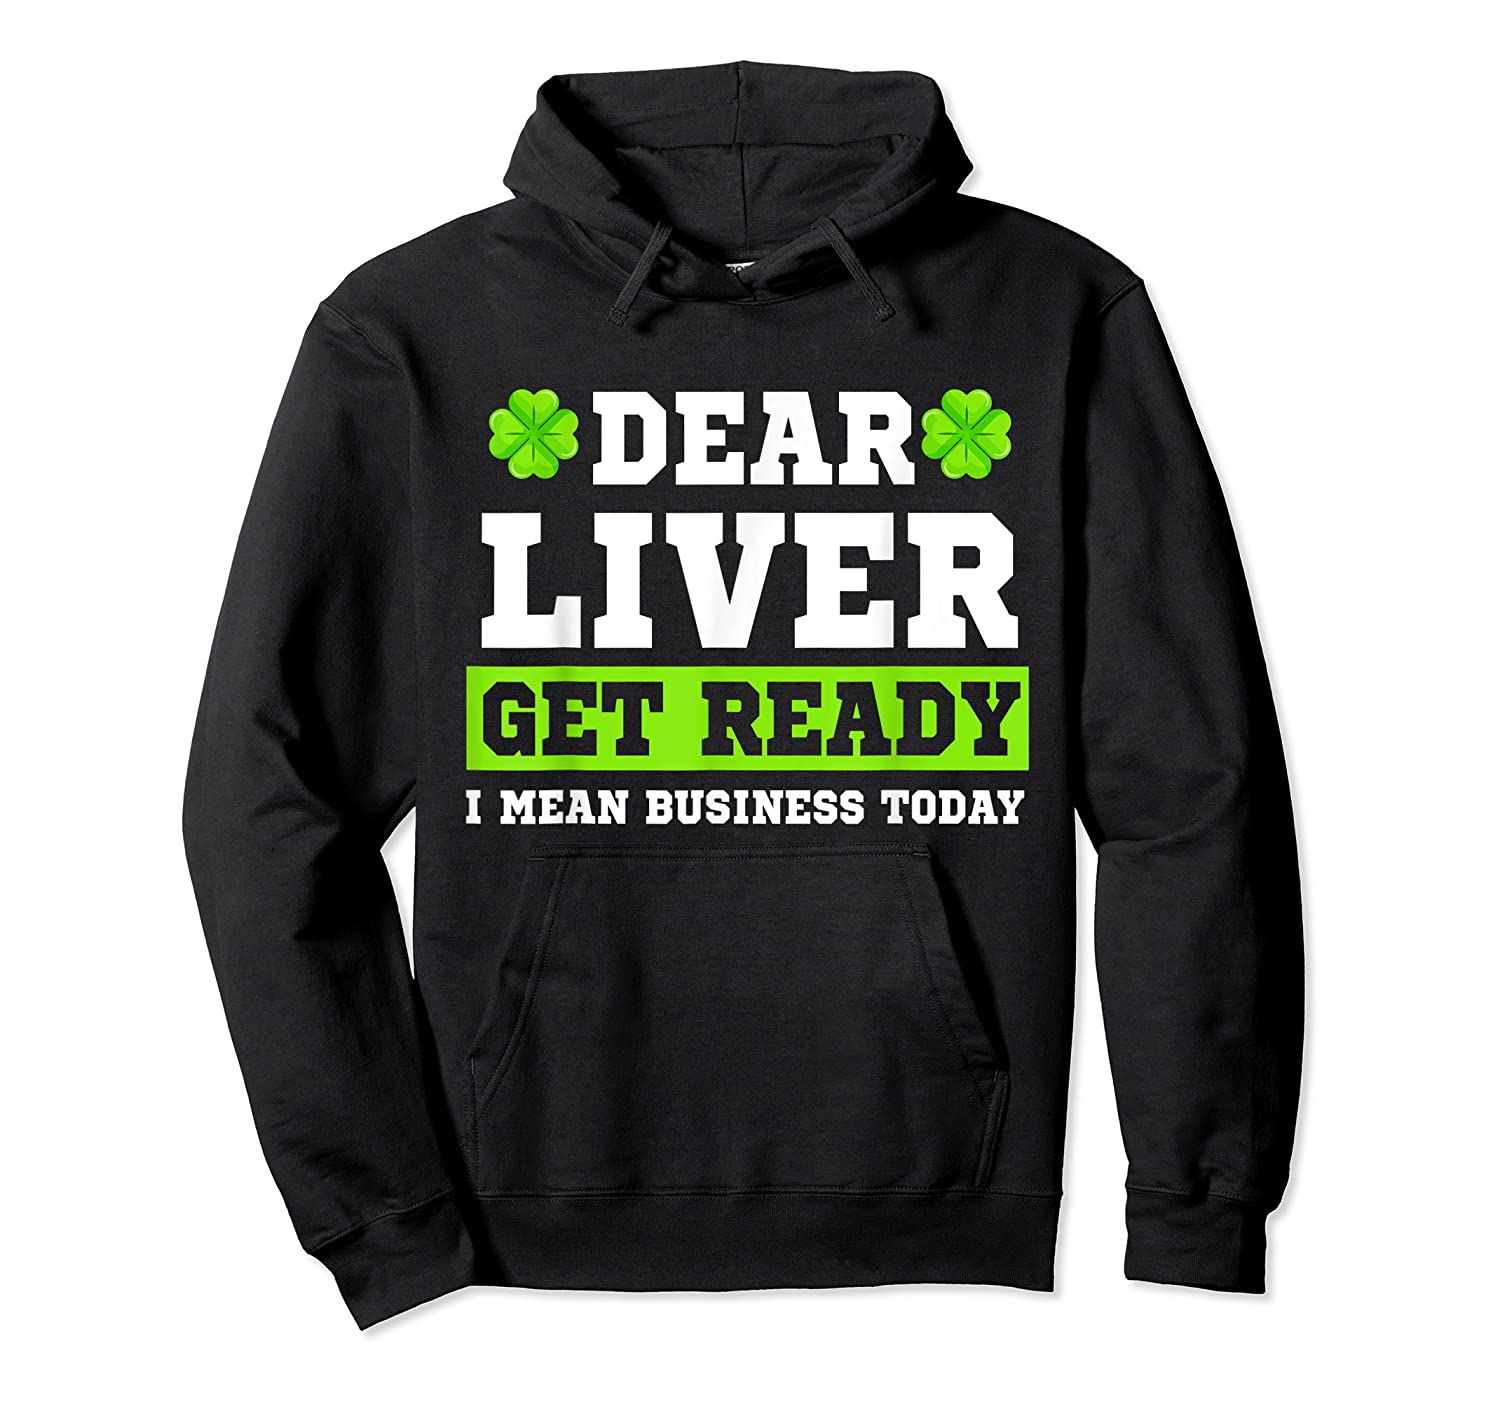 Dear Liver Get Ready Funny Saint Patrick S Day Gift Tshirt Unisex Pullover Hoodie